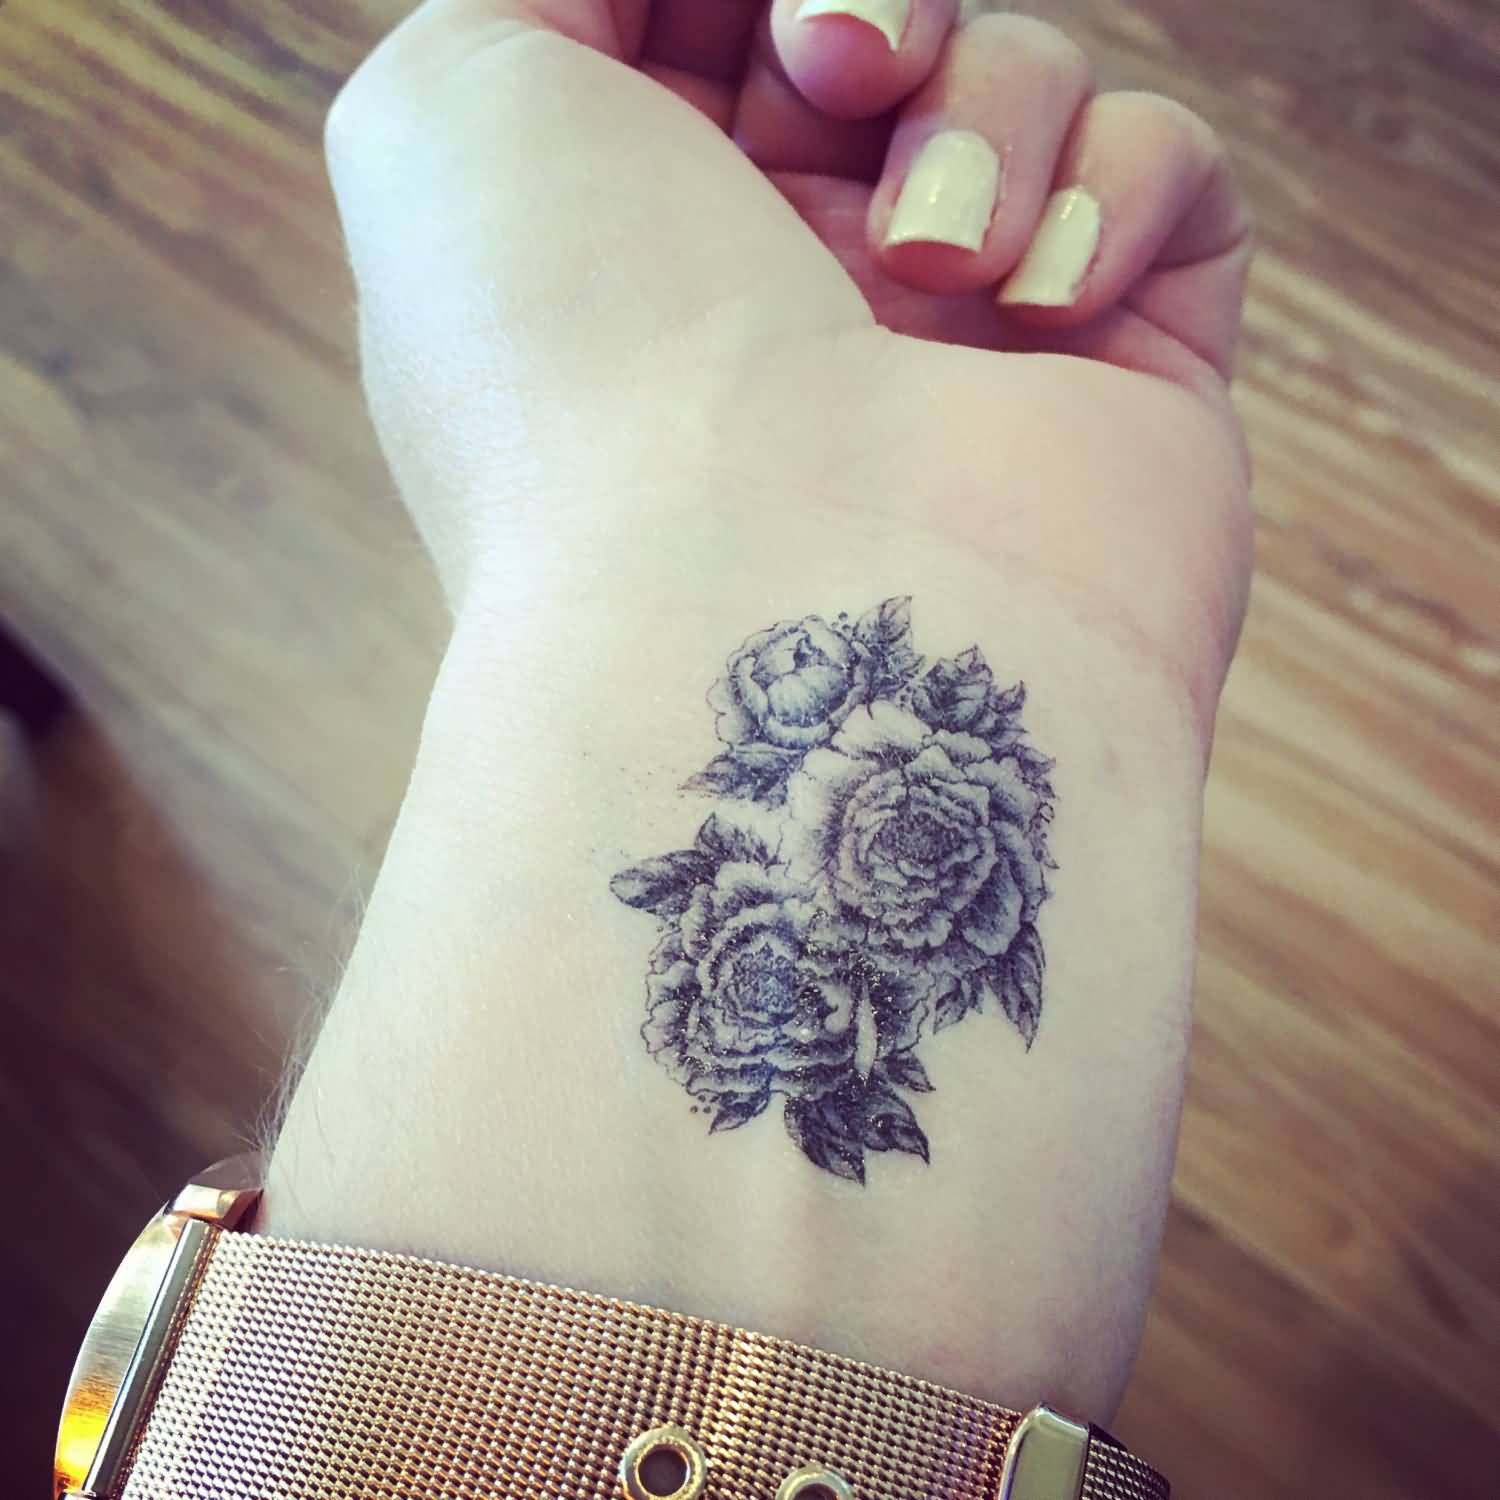 Black ink tattoos for girls - Black Ink Peony Flowers Tattoo On Girl Left Wrist